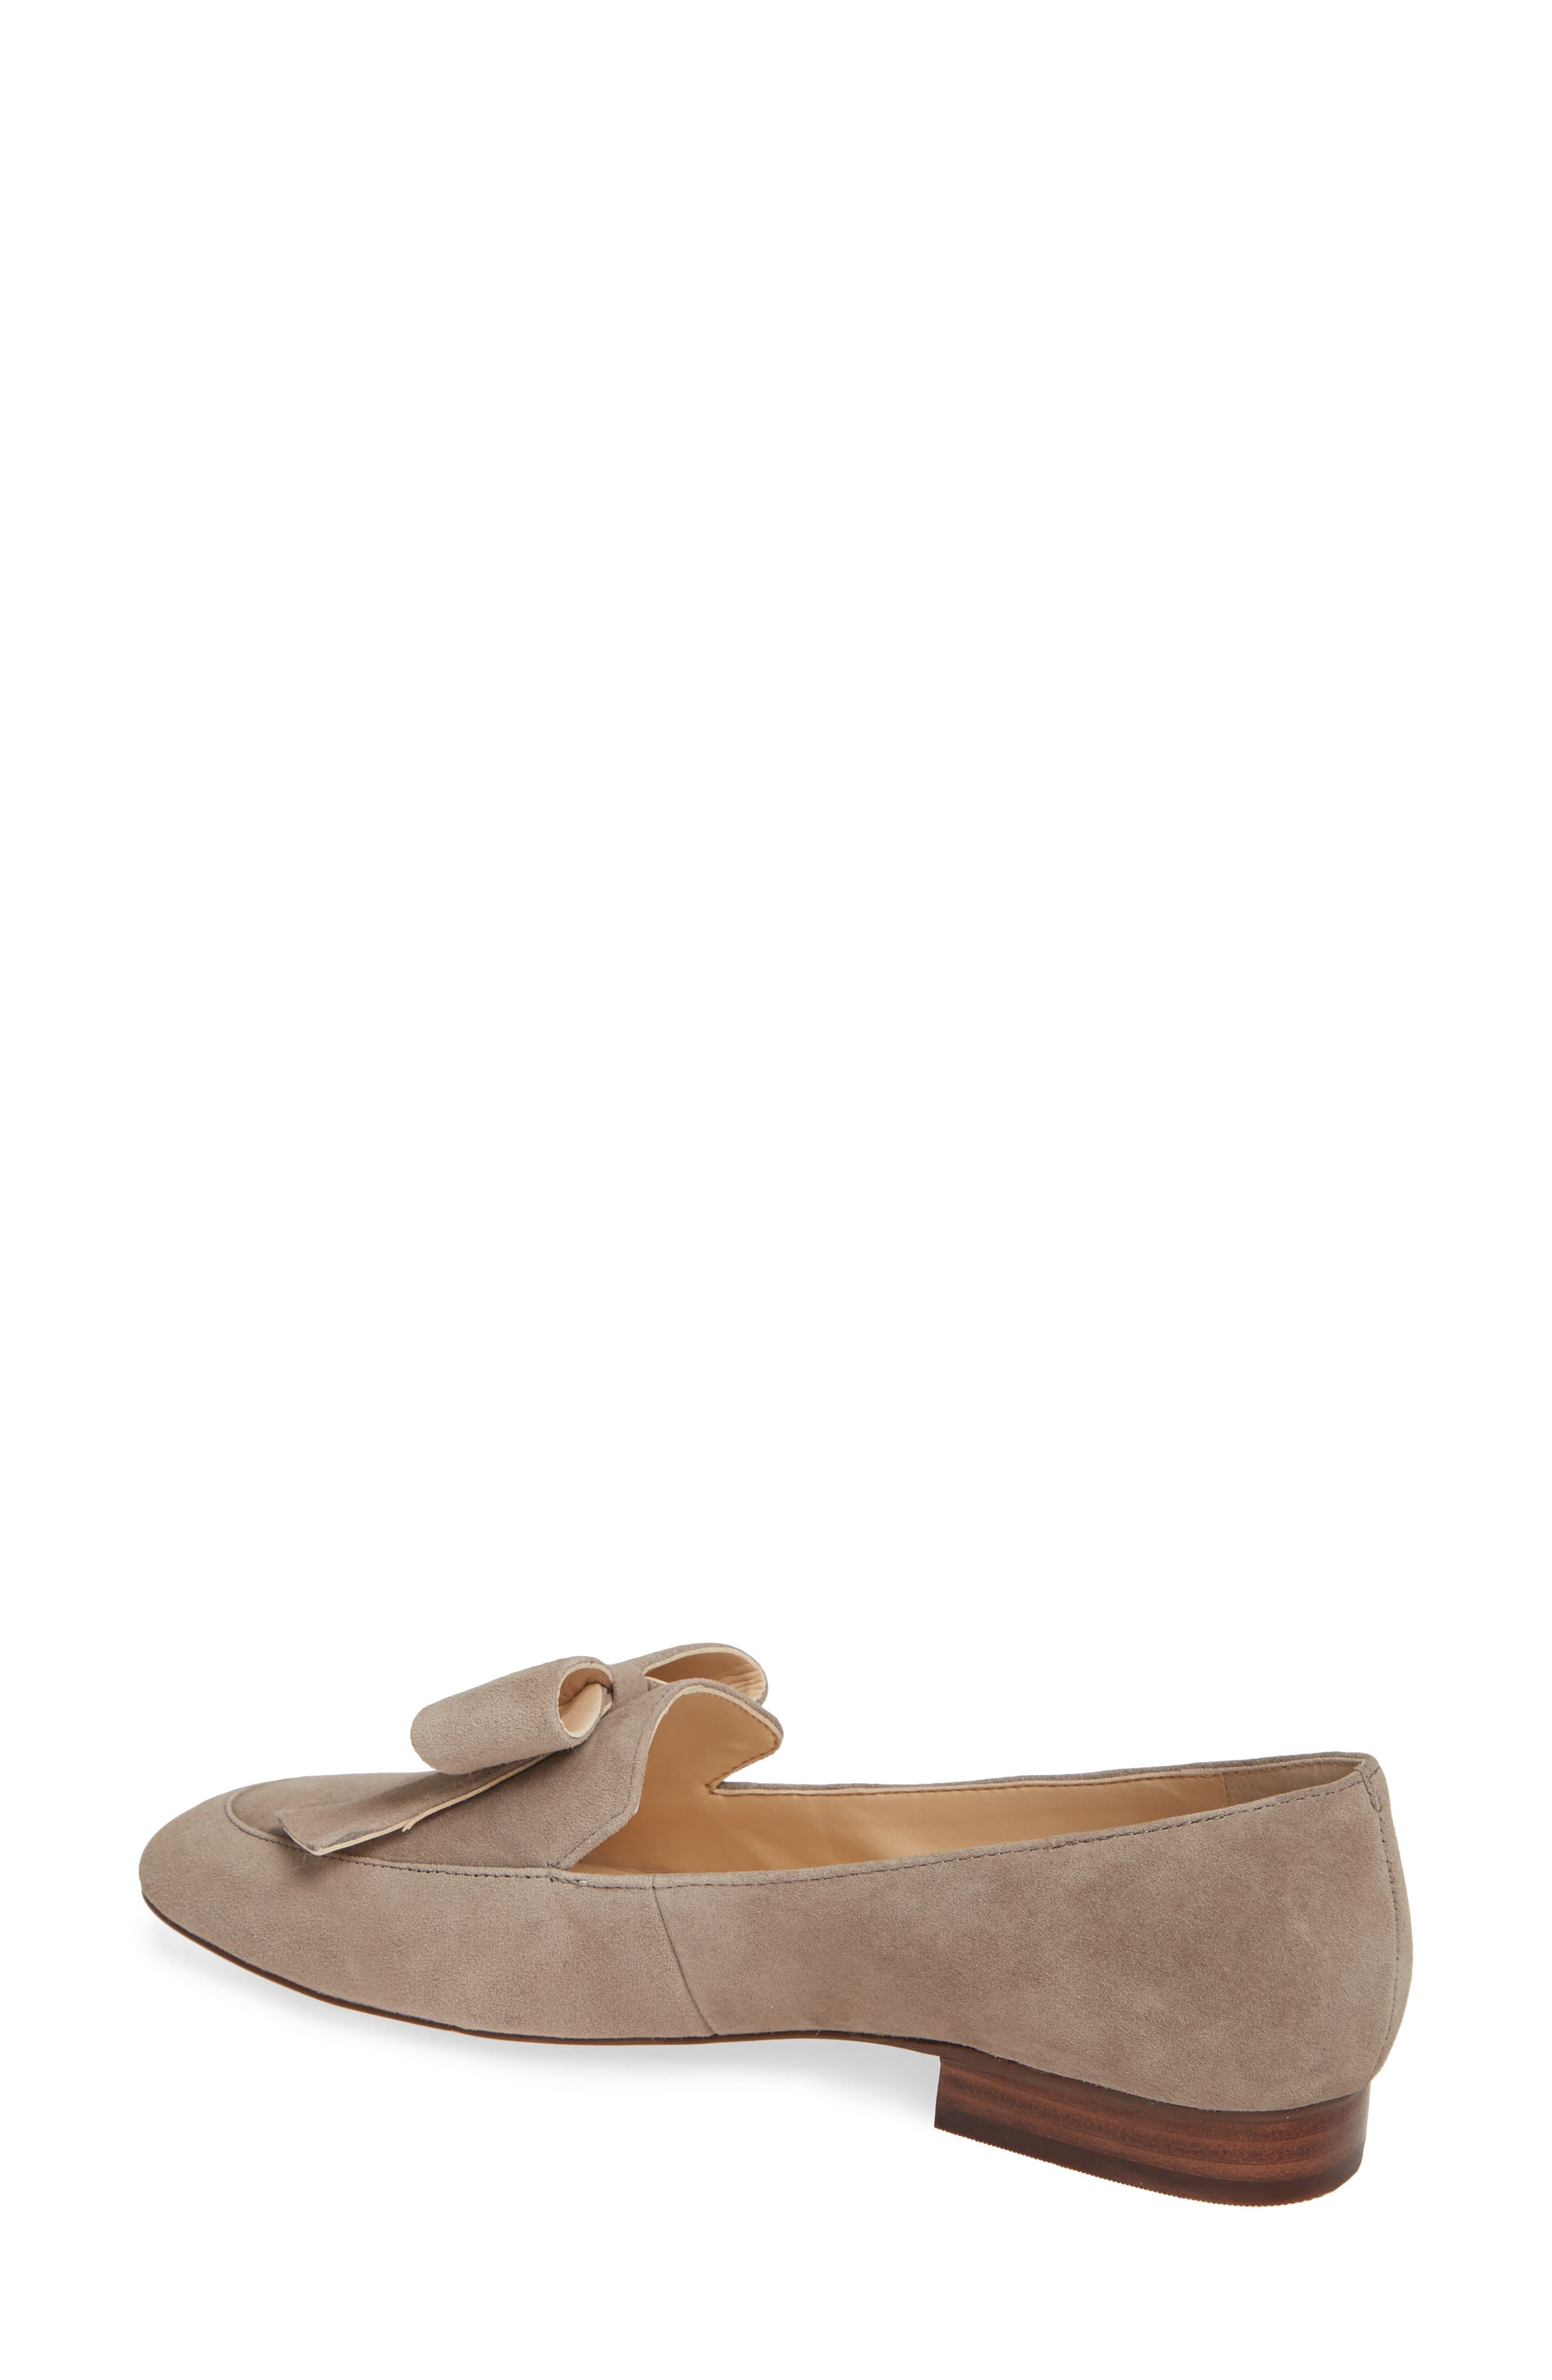 SOLE SOCIETY, Tannse Bow Loafer, Alternate thumbnail 2, color, MUSHROOM SUEDE